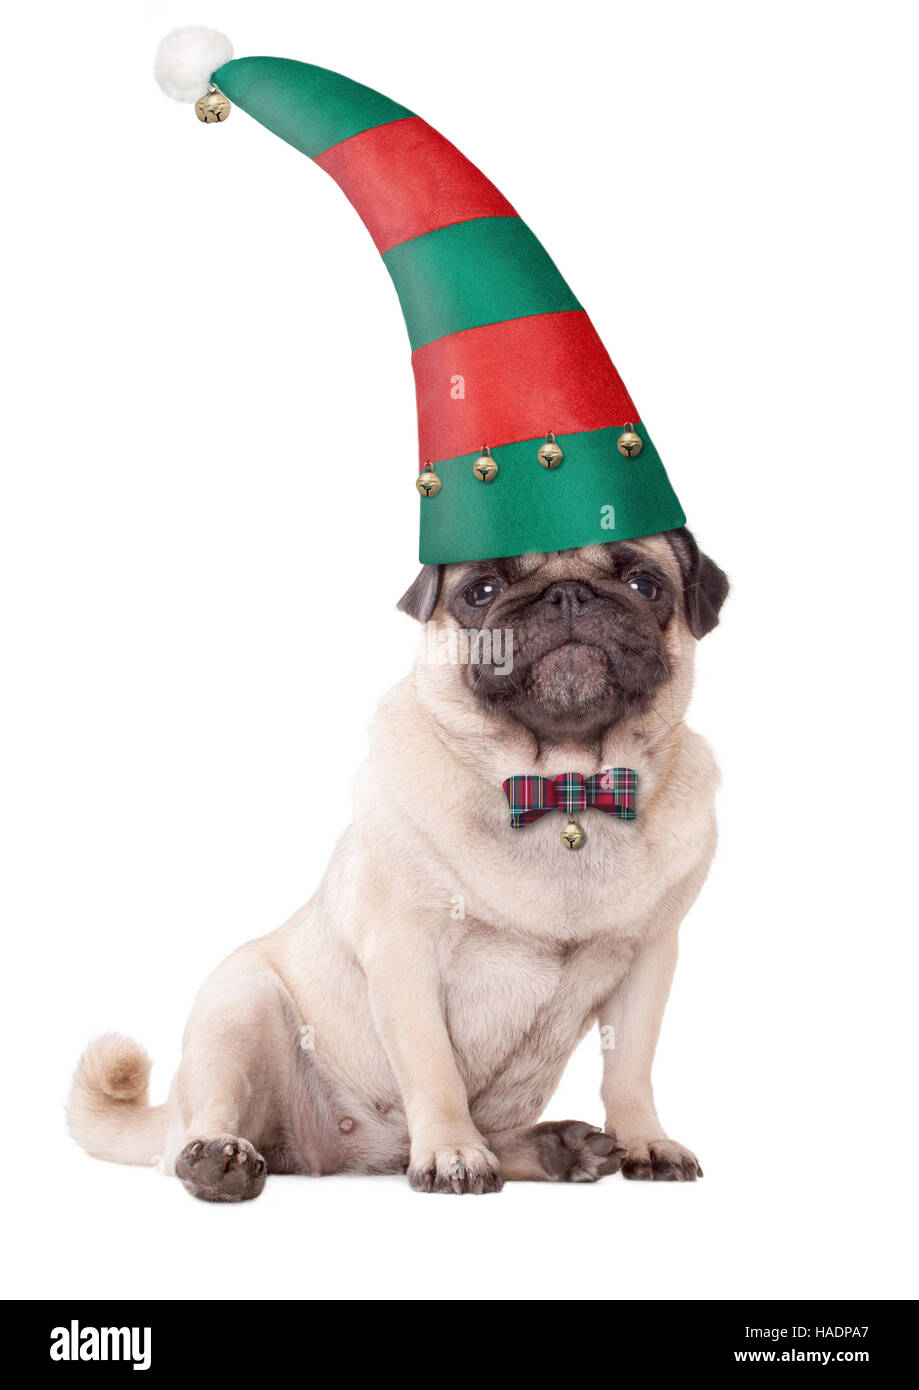 cute pug puppy dog wearing an elf hat for christmas, on white background - Stock Image